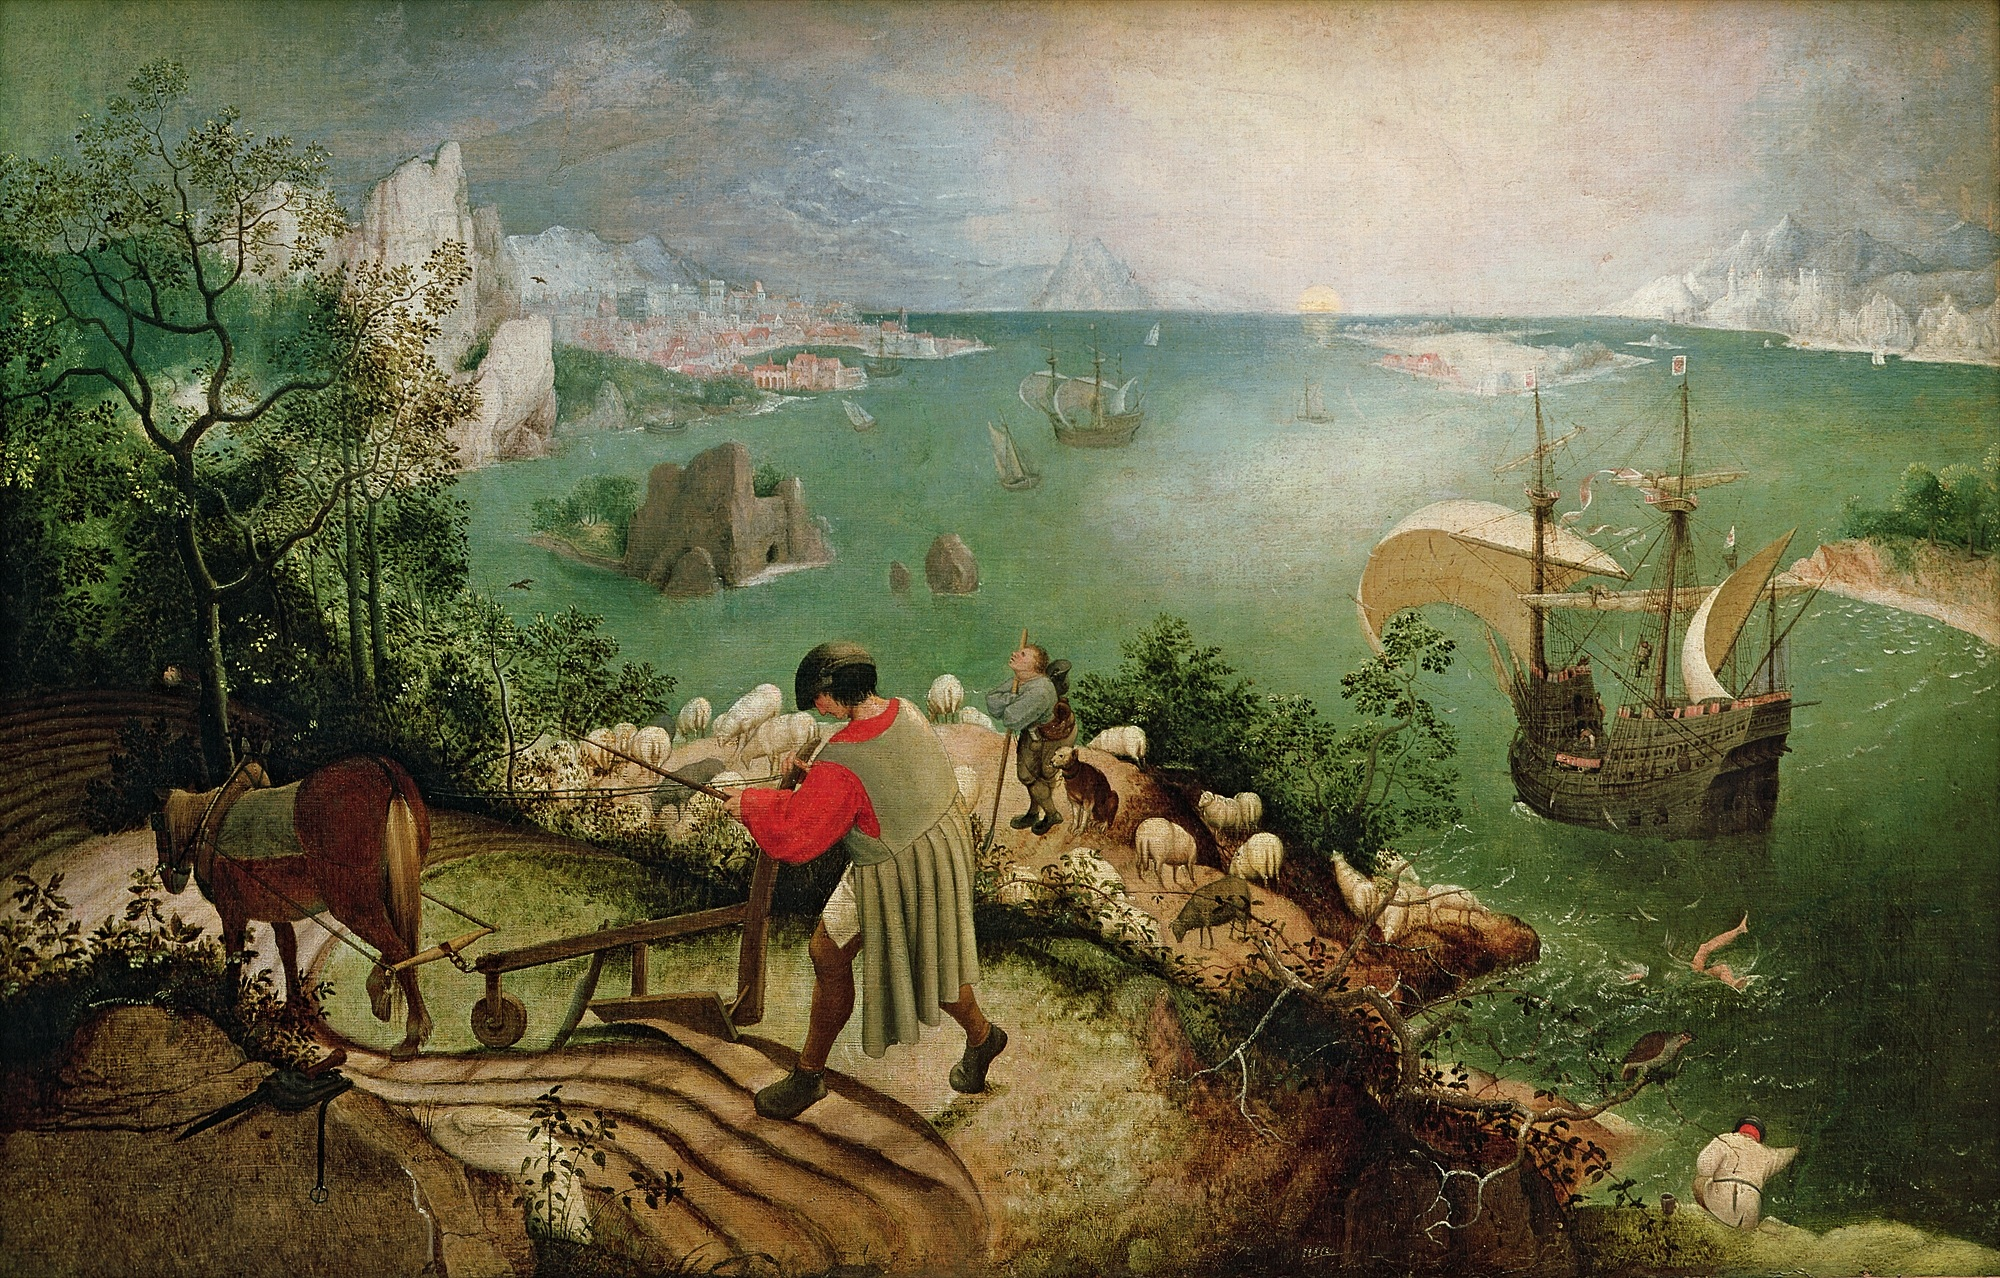 The Fall of Icarus by Pieter Bruegel